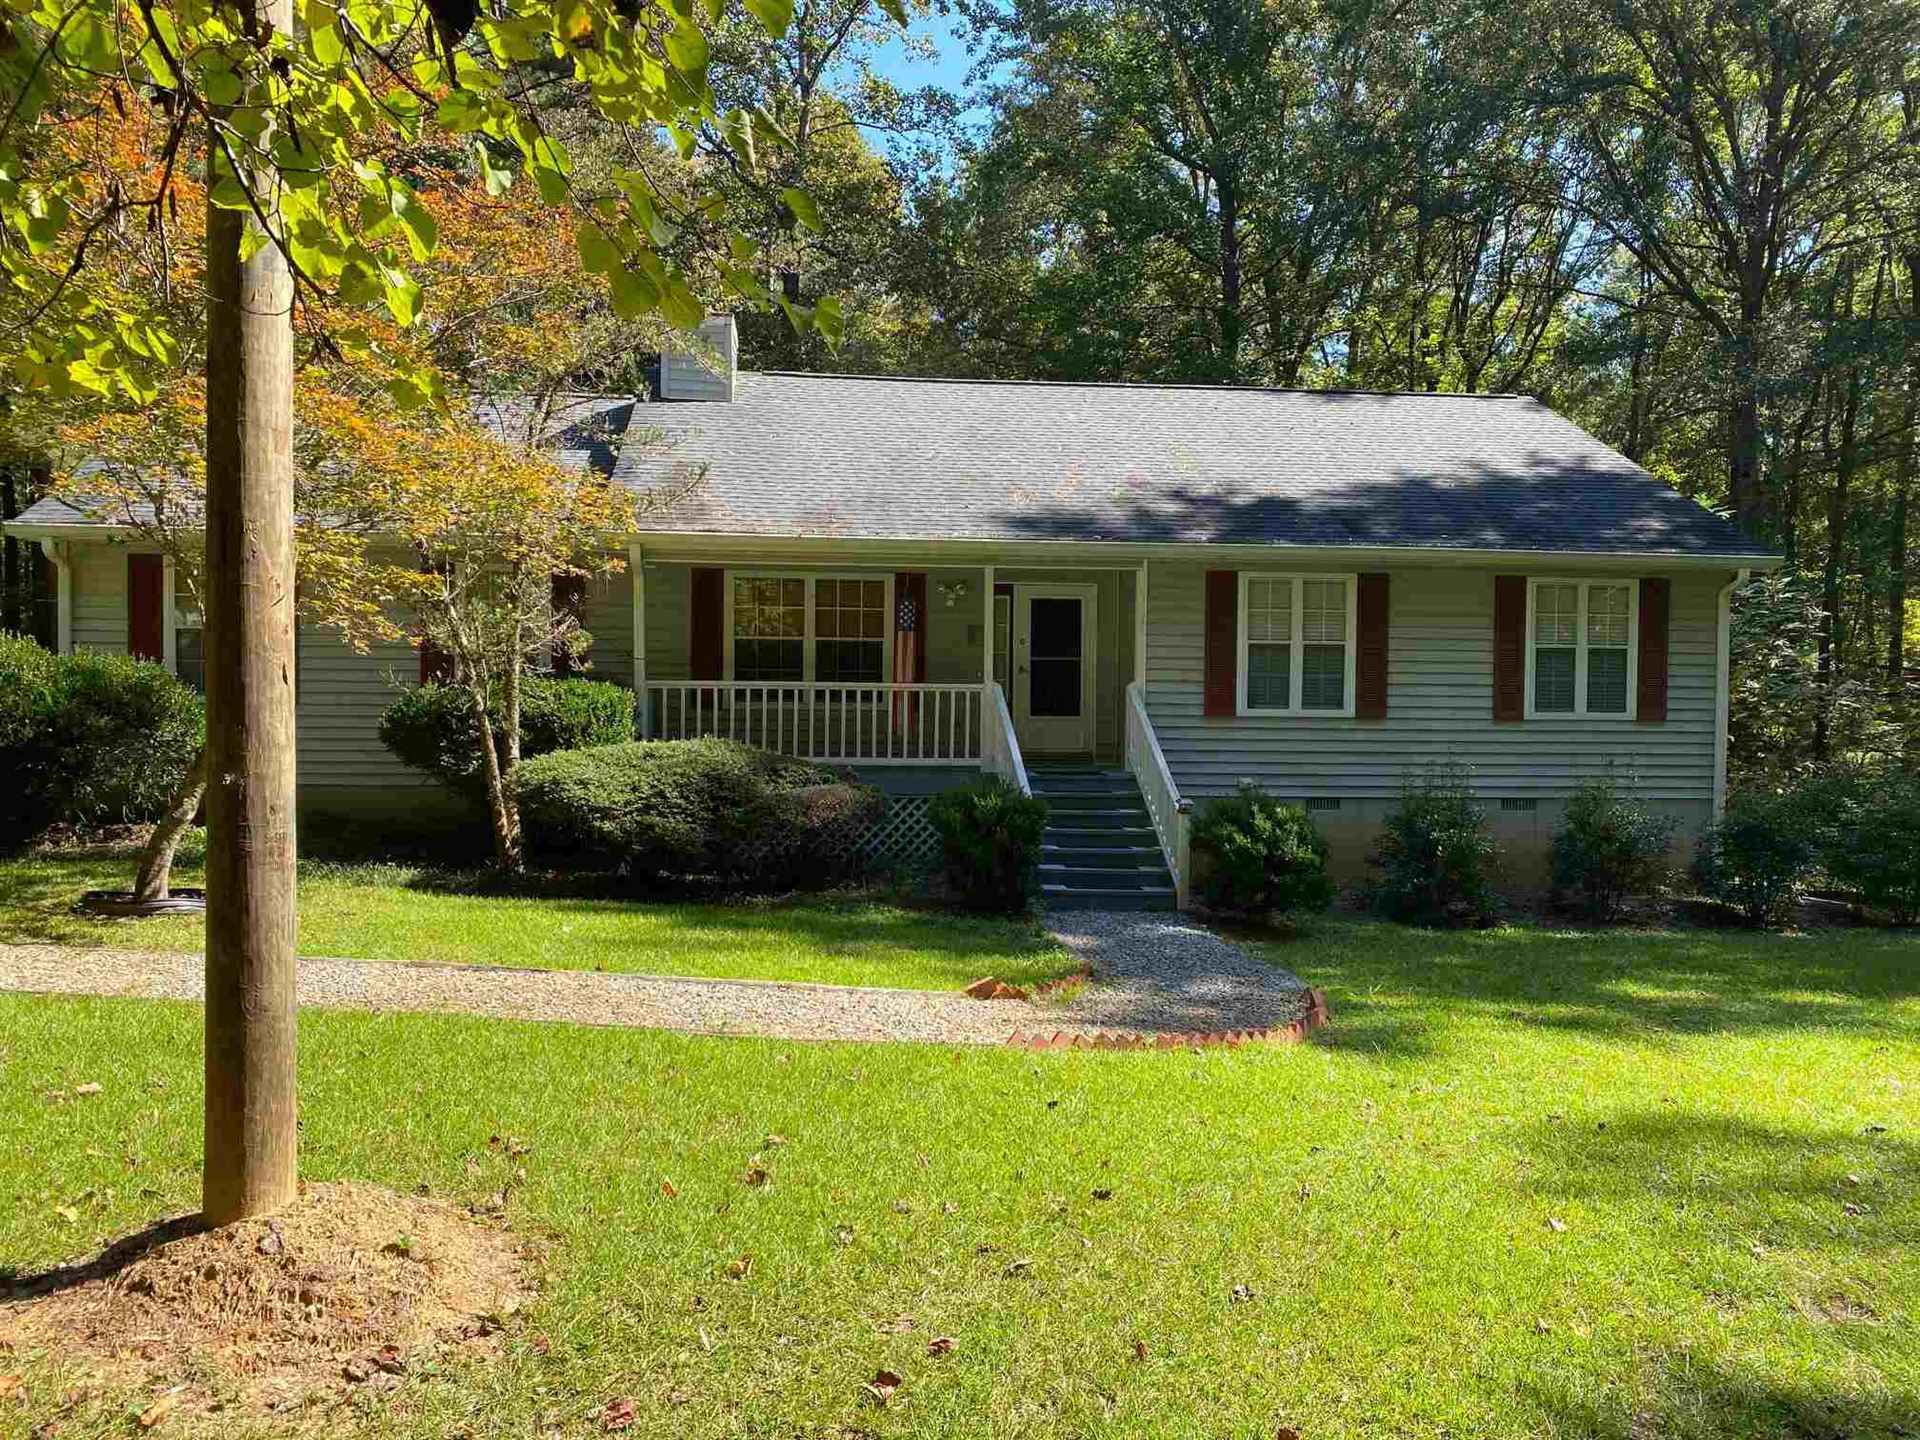 528 S Steel Bridge Rd, Eatonton, GA 31024 - MLS#: 8873091